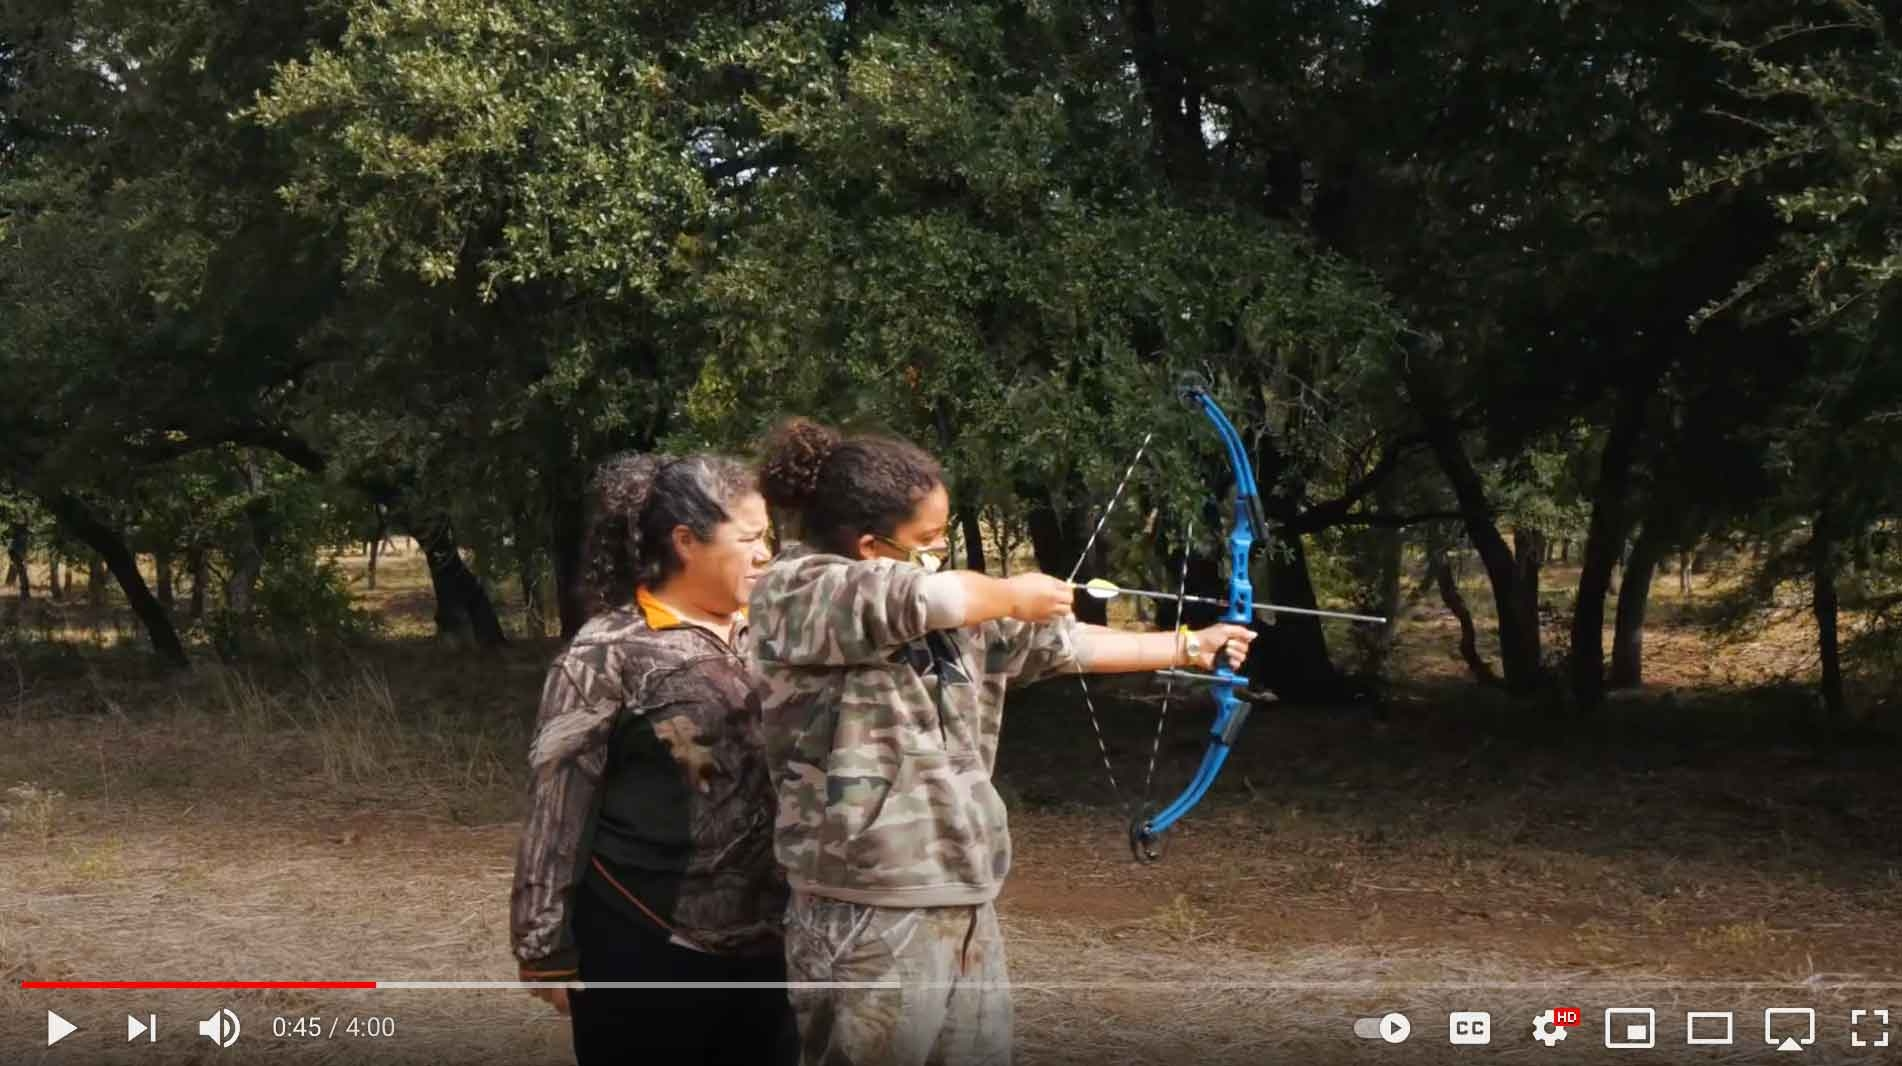 Young woman aiming a compound bow.